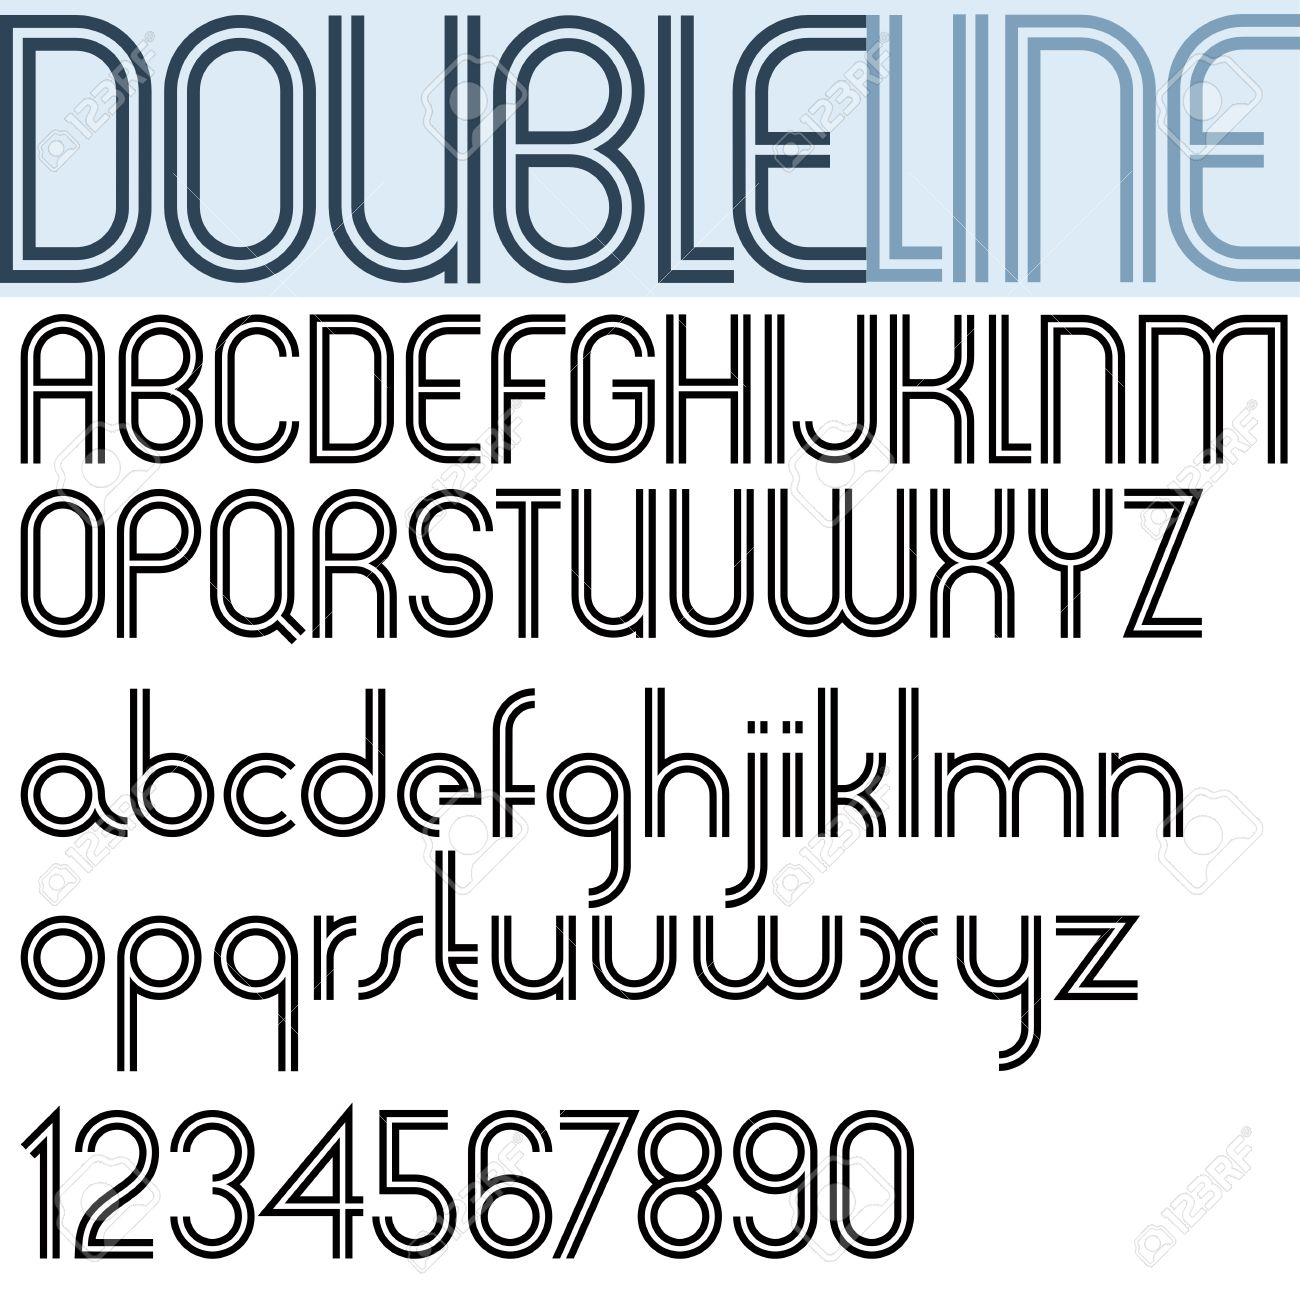 Double Line Retro Style Geometric Font Light Version Trendy And Stylish Letters Alphabet